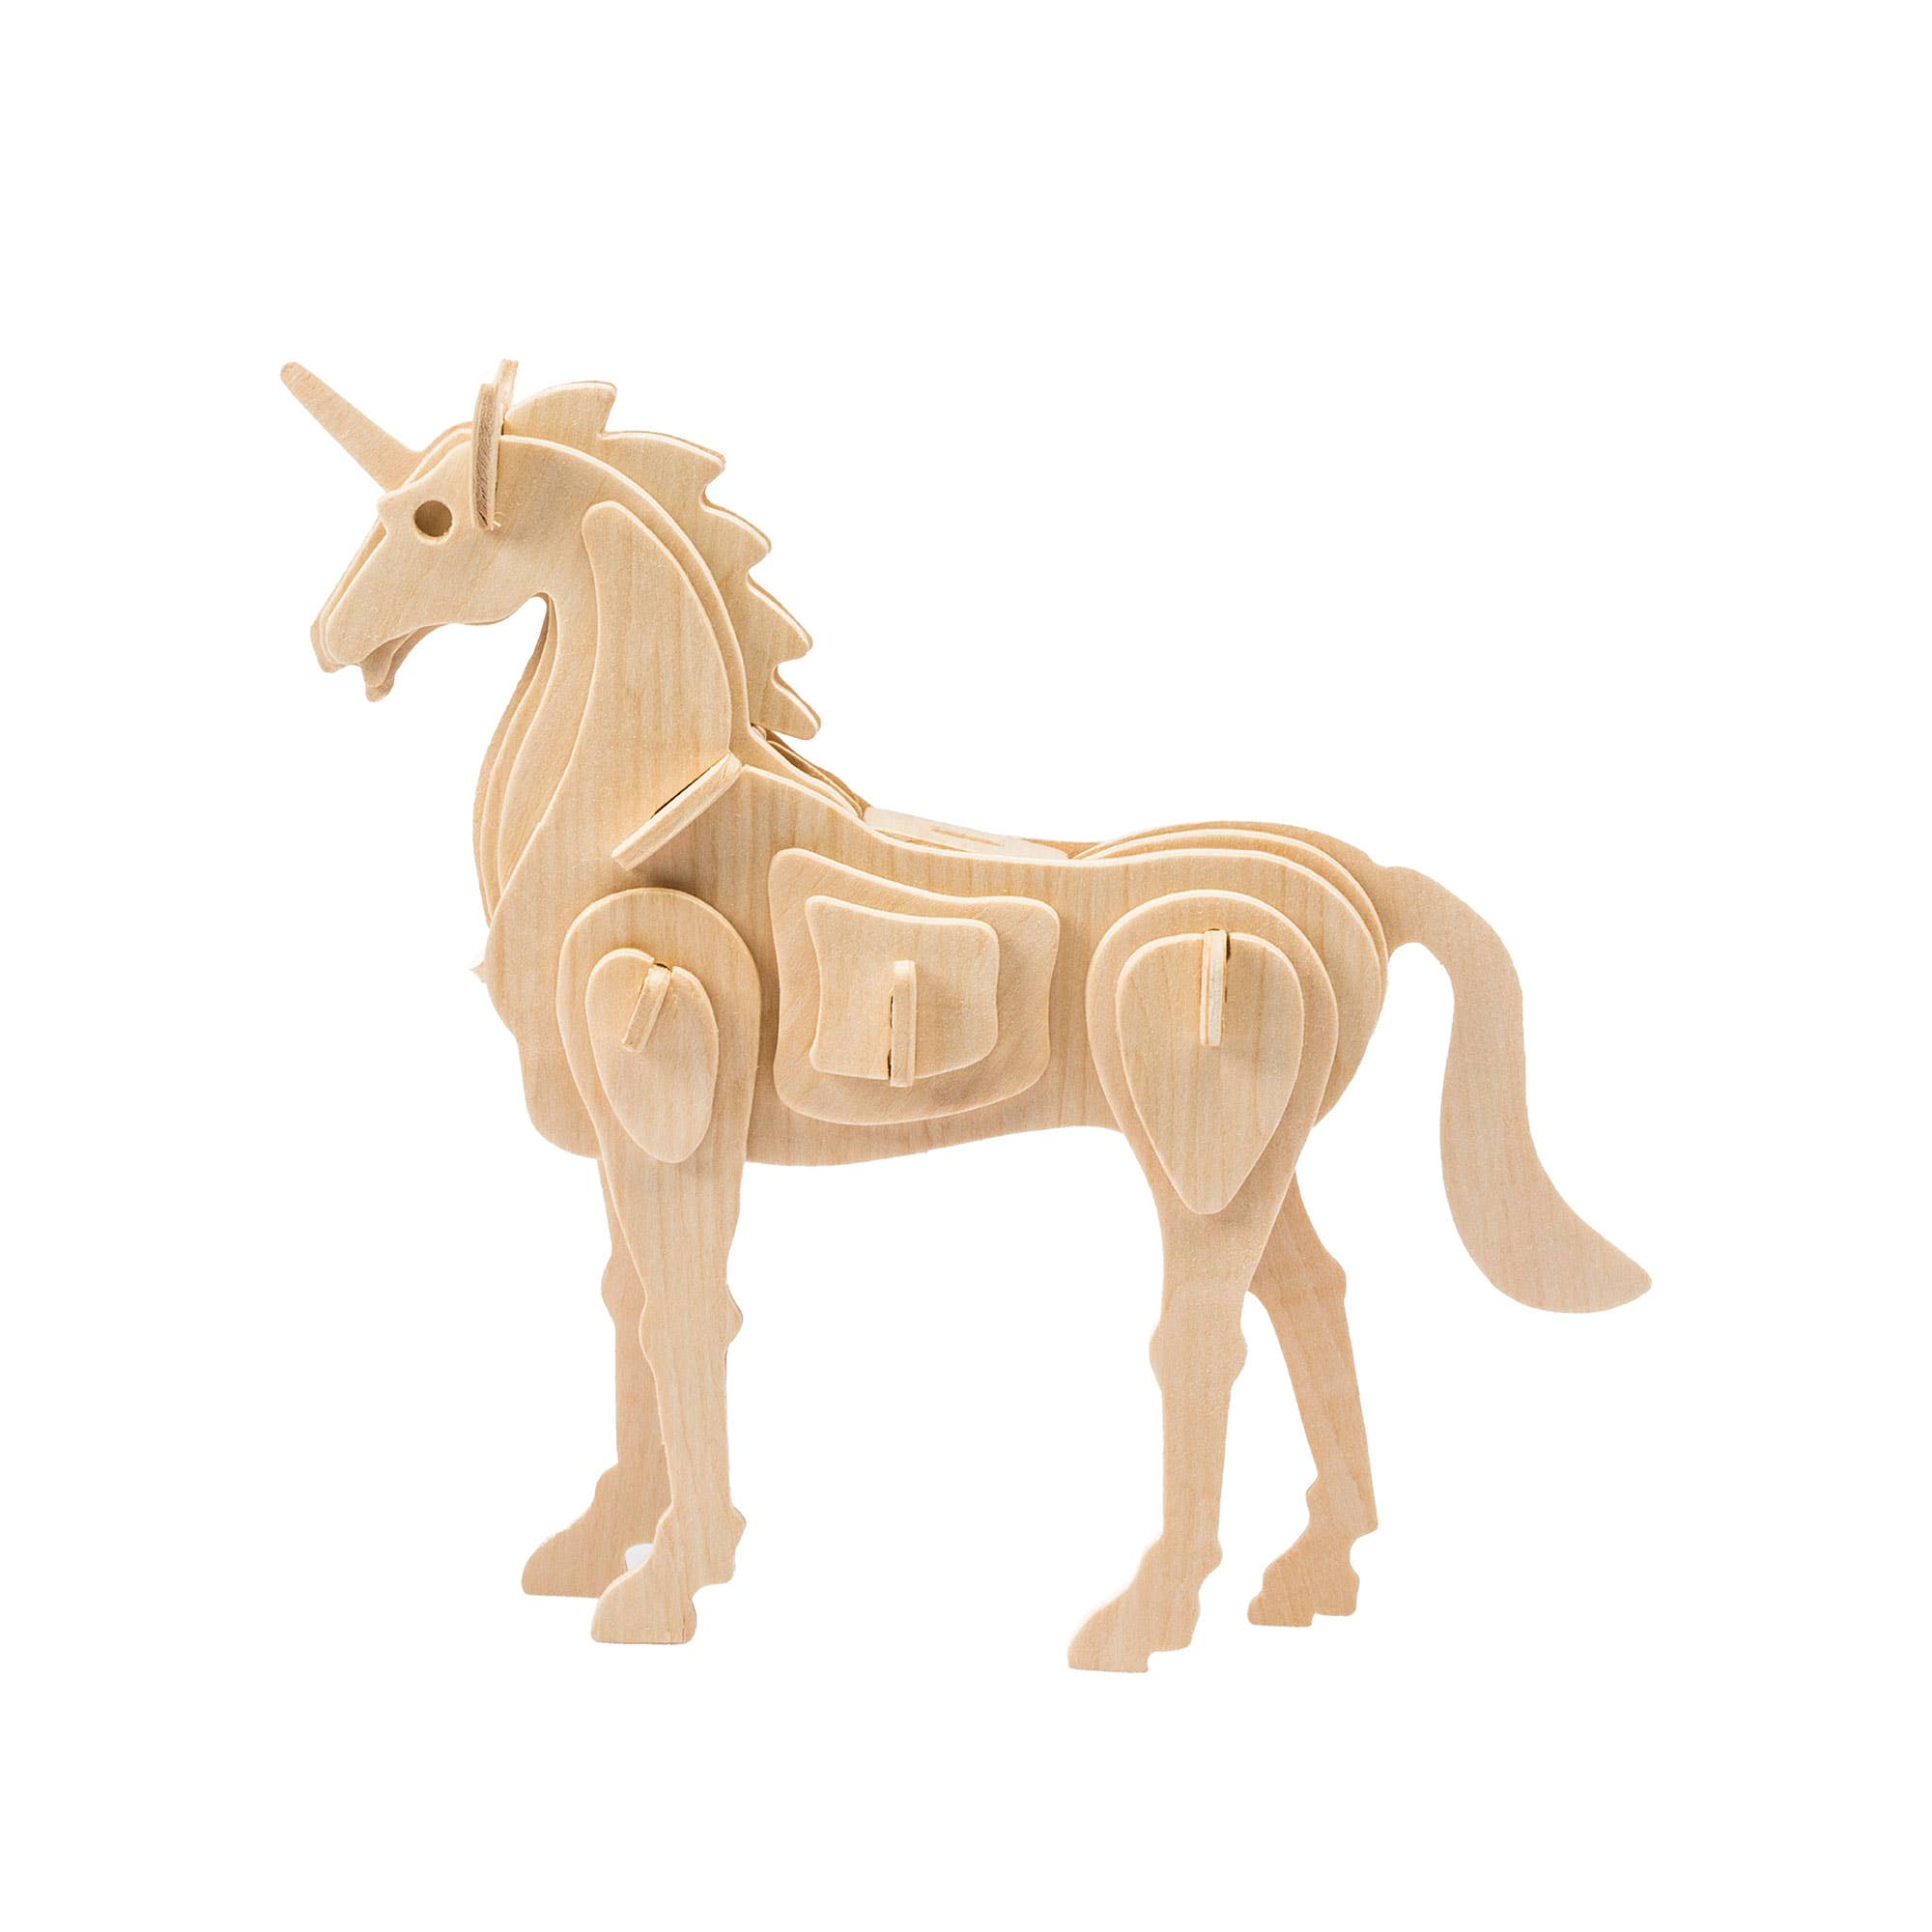 Unicorn 3D Wooden Puzzle